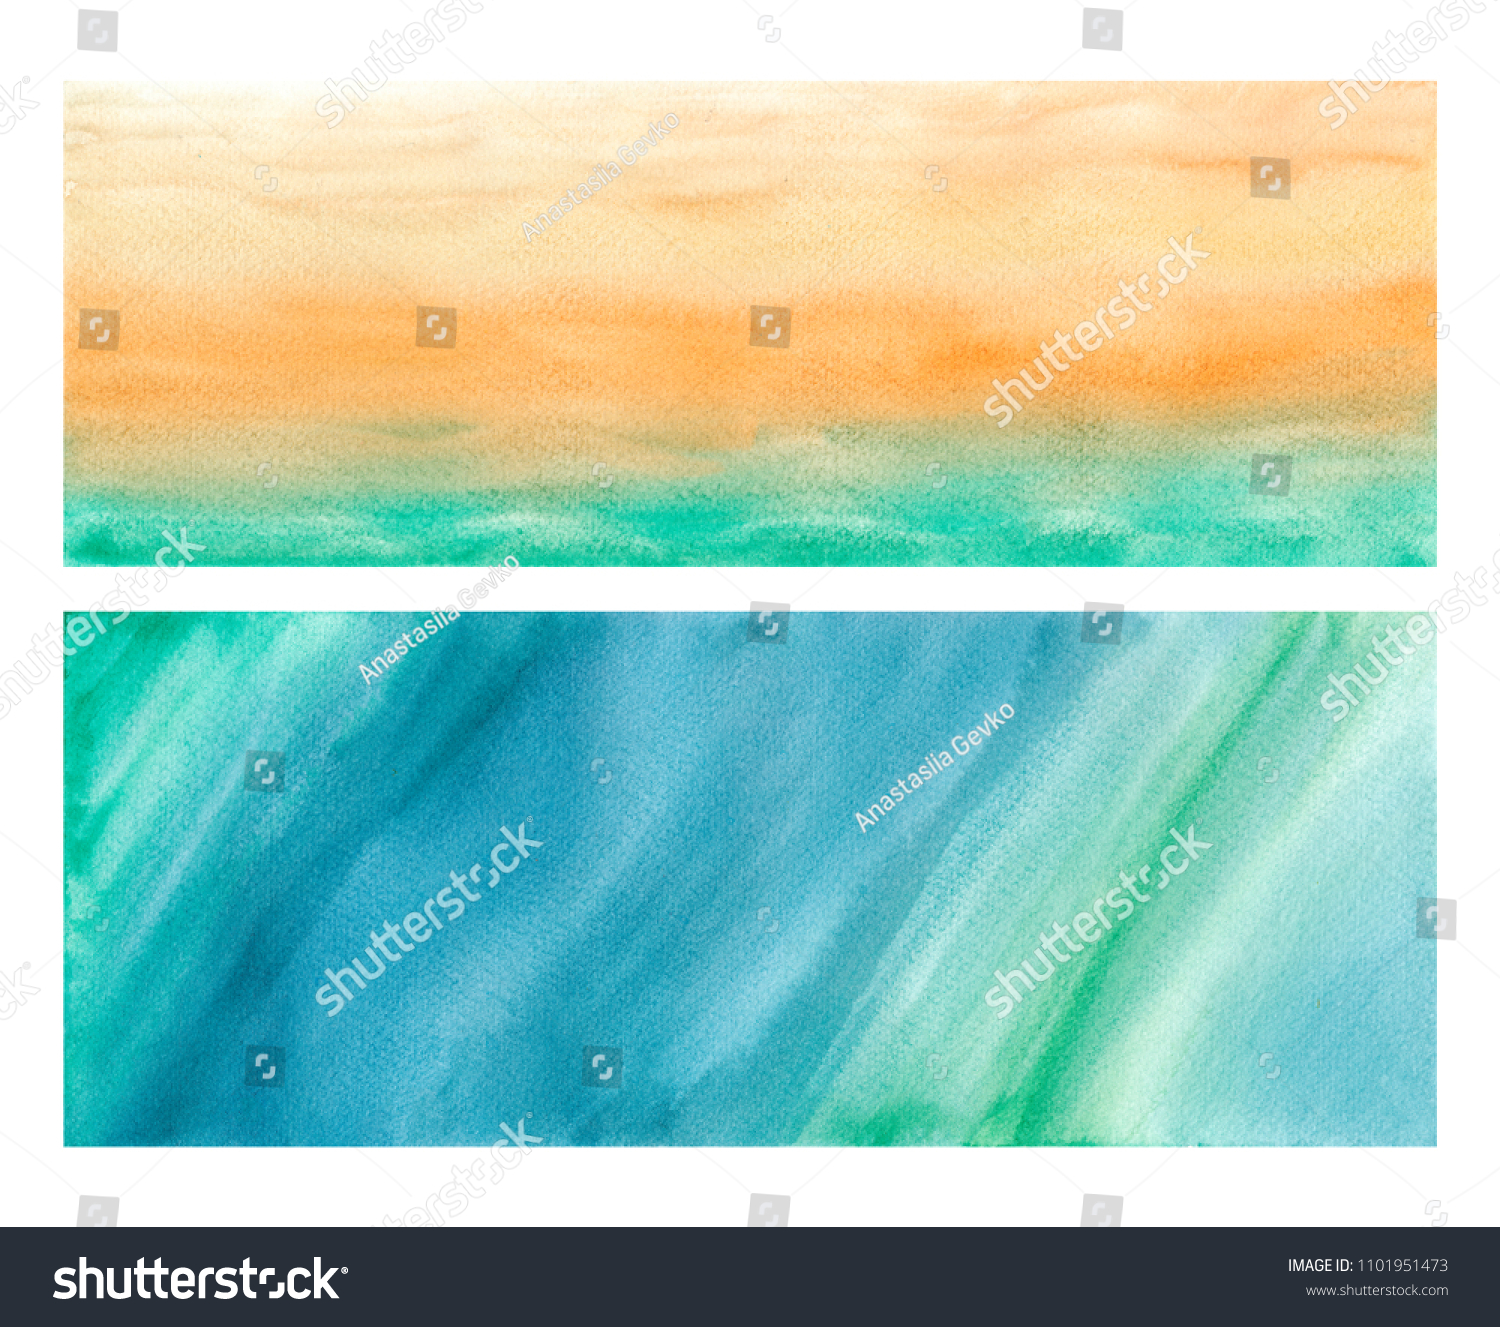 Orange, Green And Blue Painted Background Abstract Watercolor Background Ink